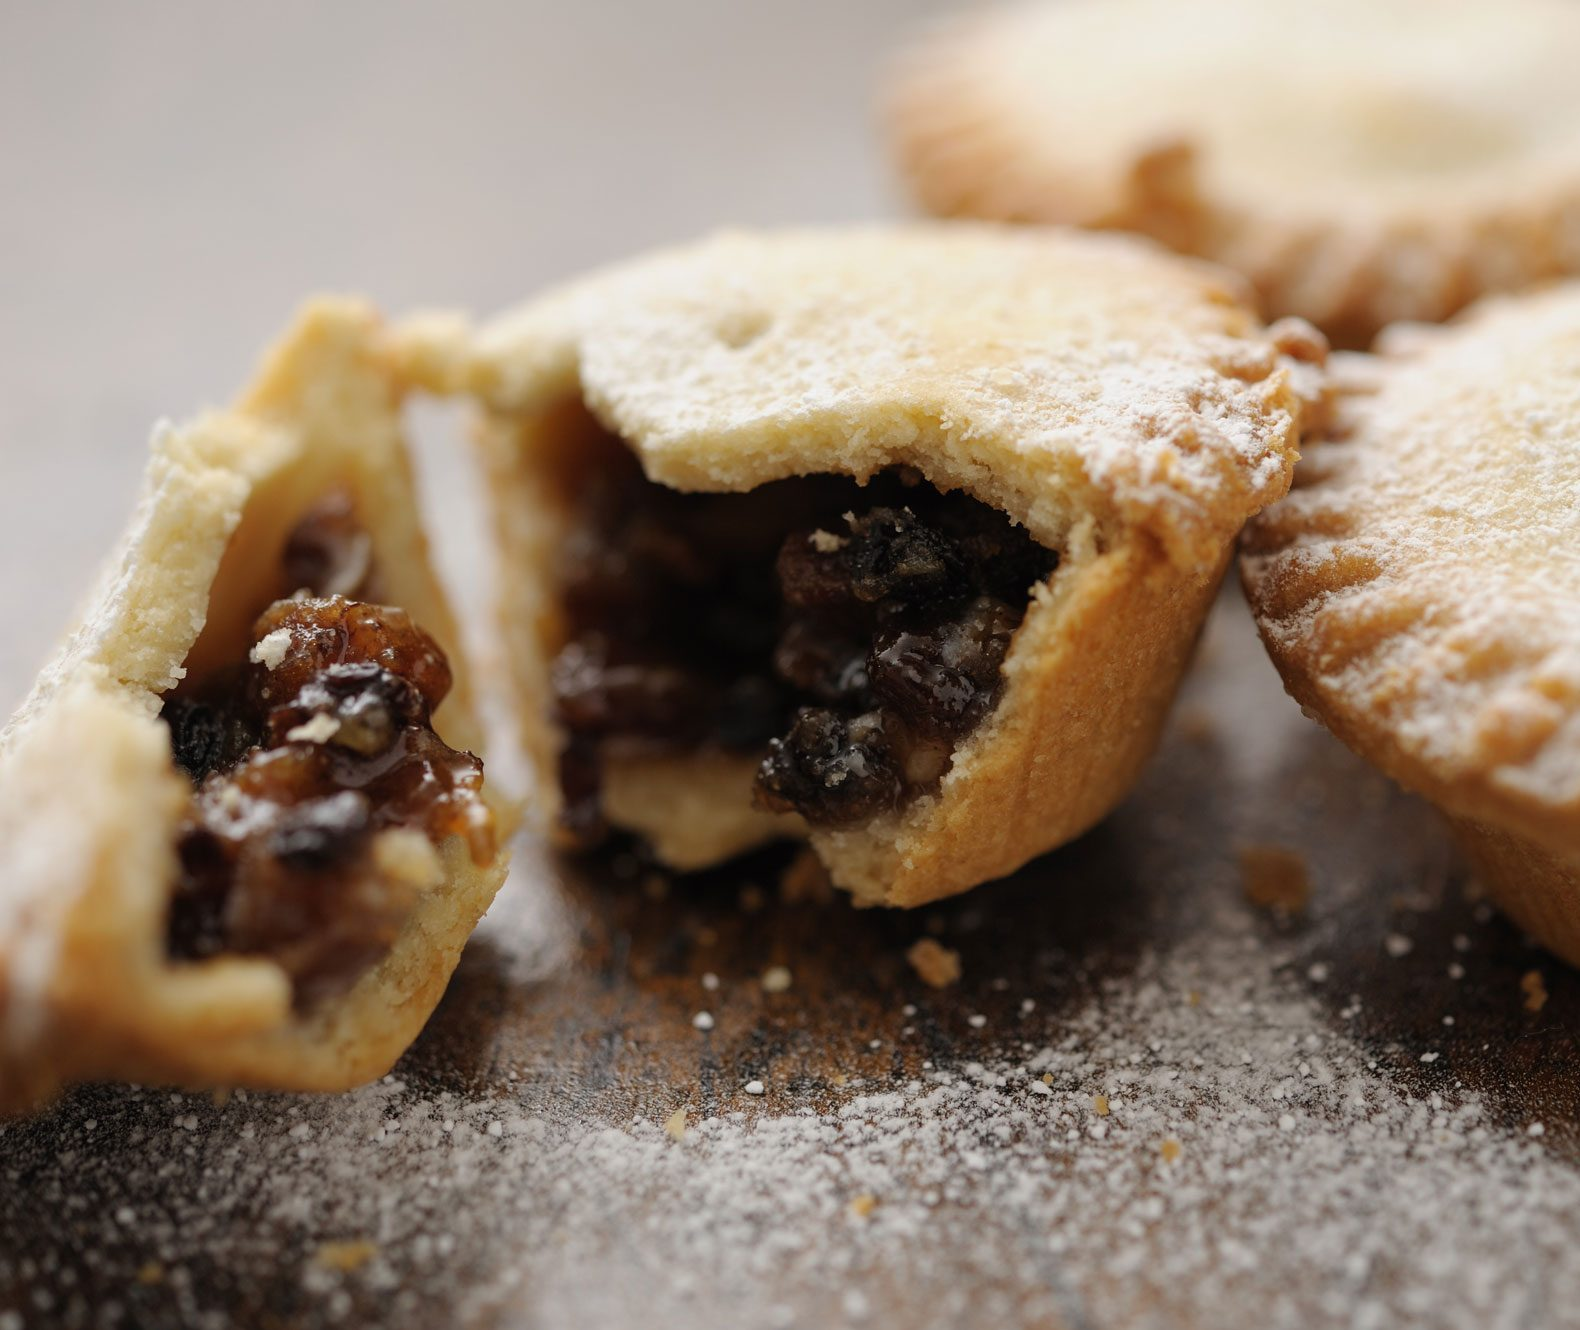 A mince pie broken apart to show its inside.